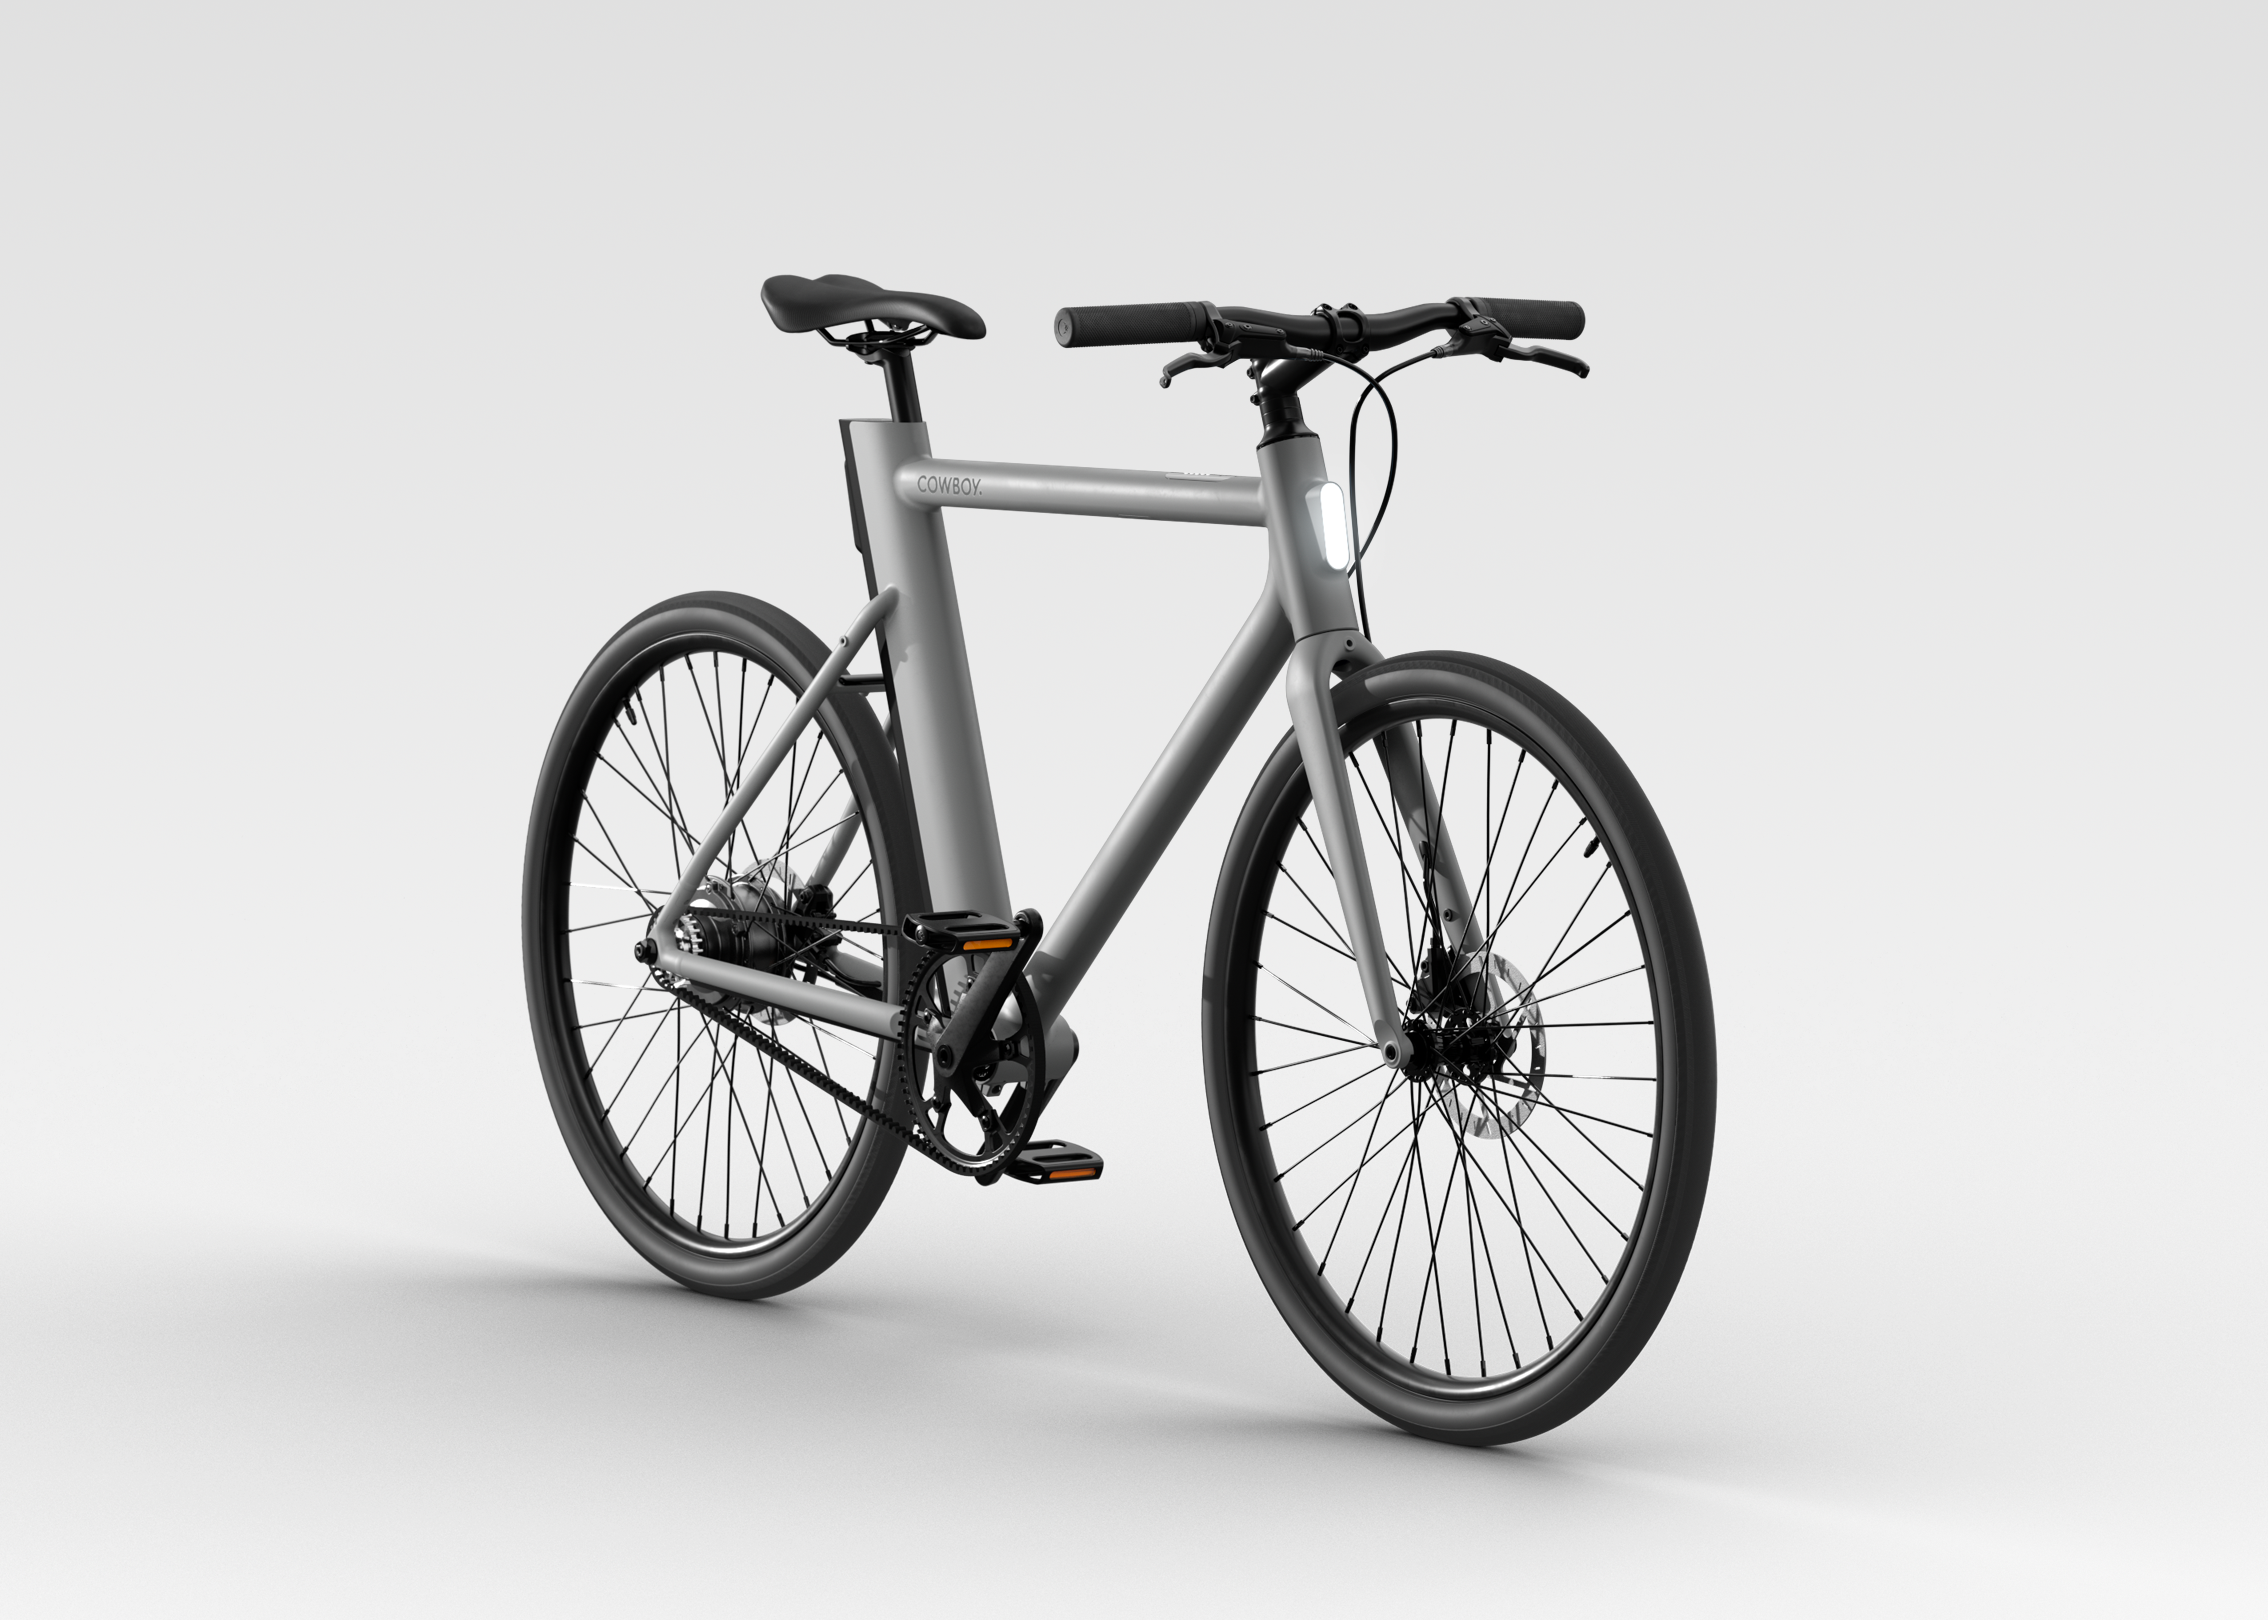 Cowboy releases updated e-bike with new carbon belt – TechCrunch